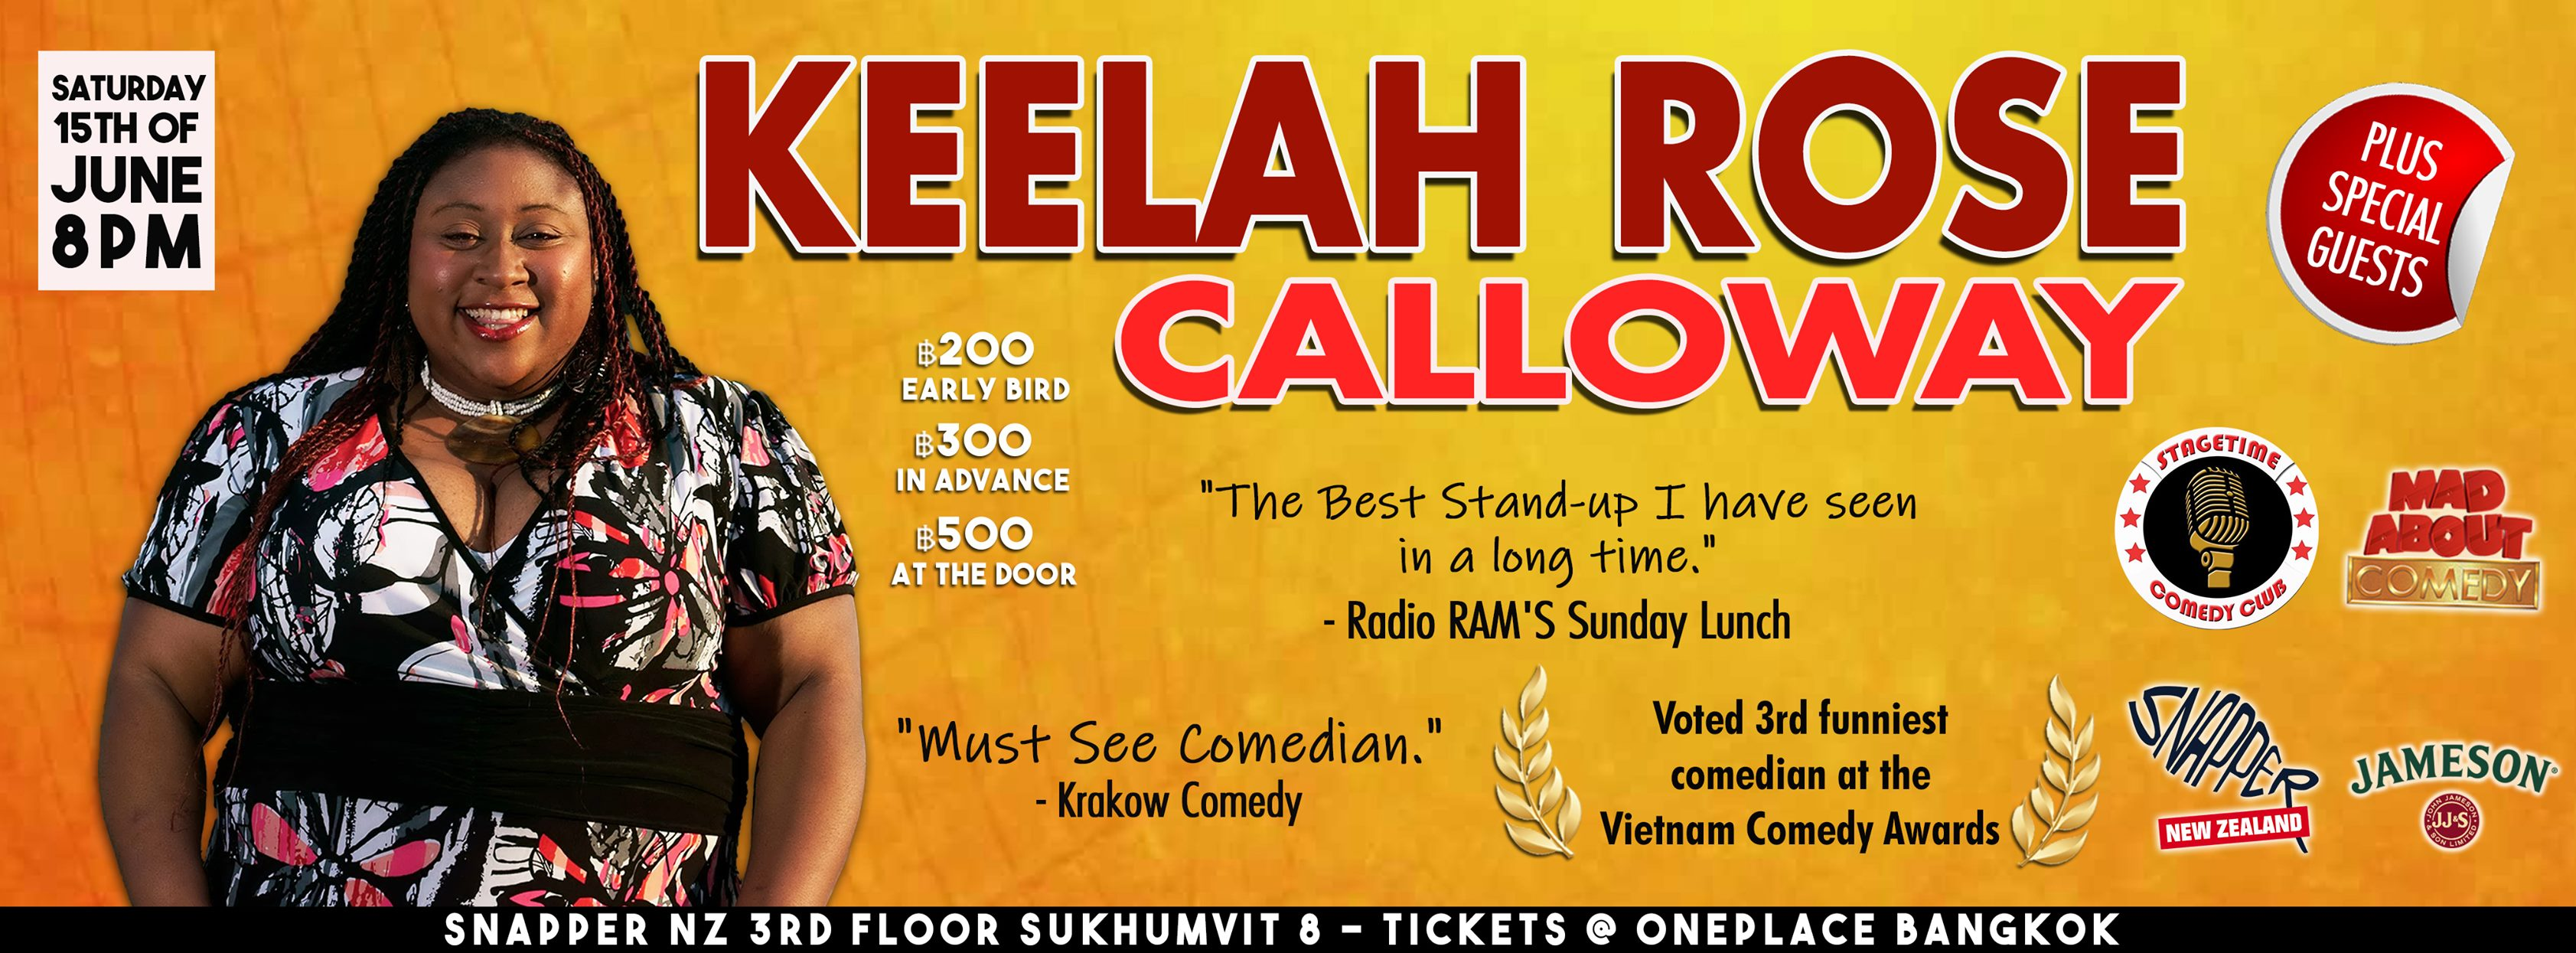 Keelah Rose Calloway. Event Comedy